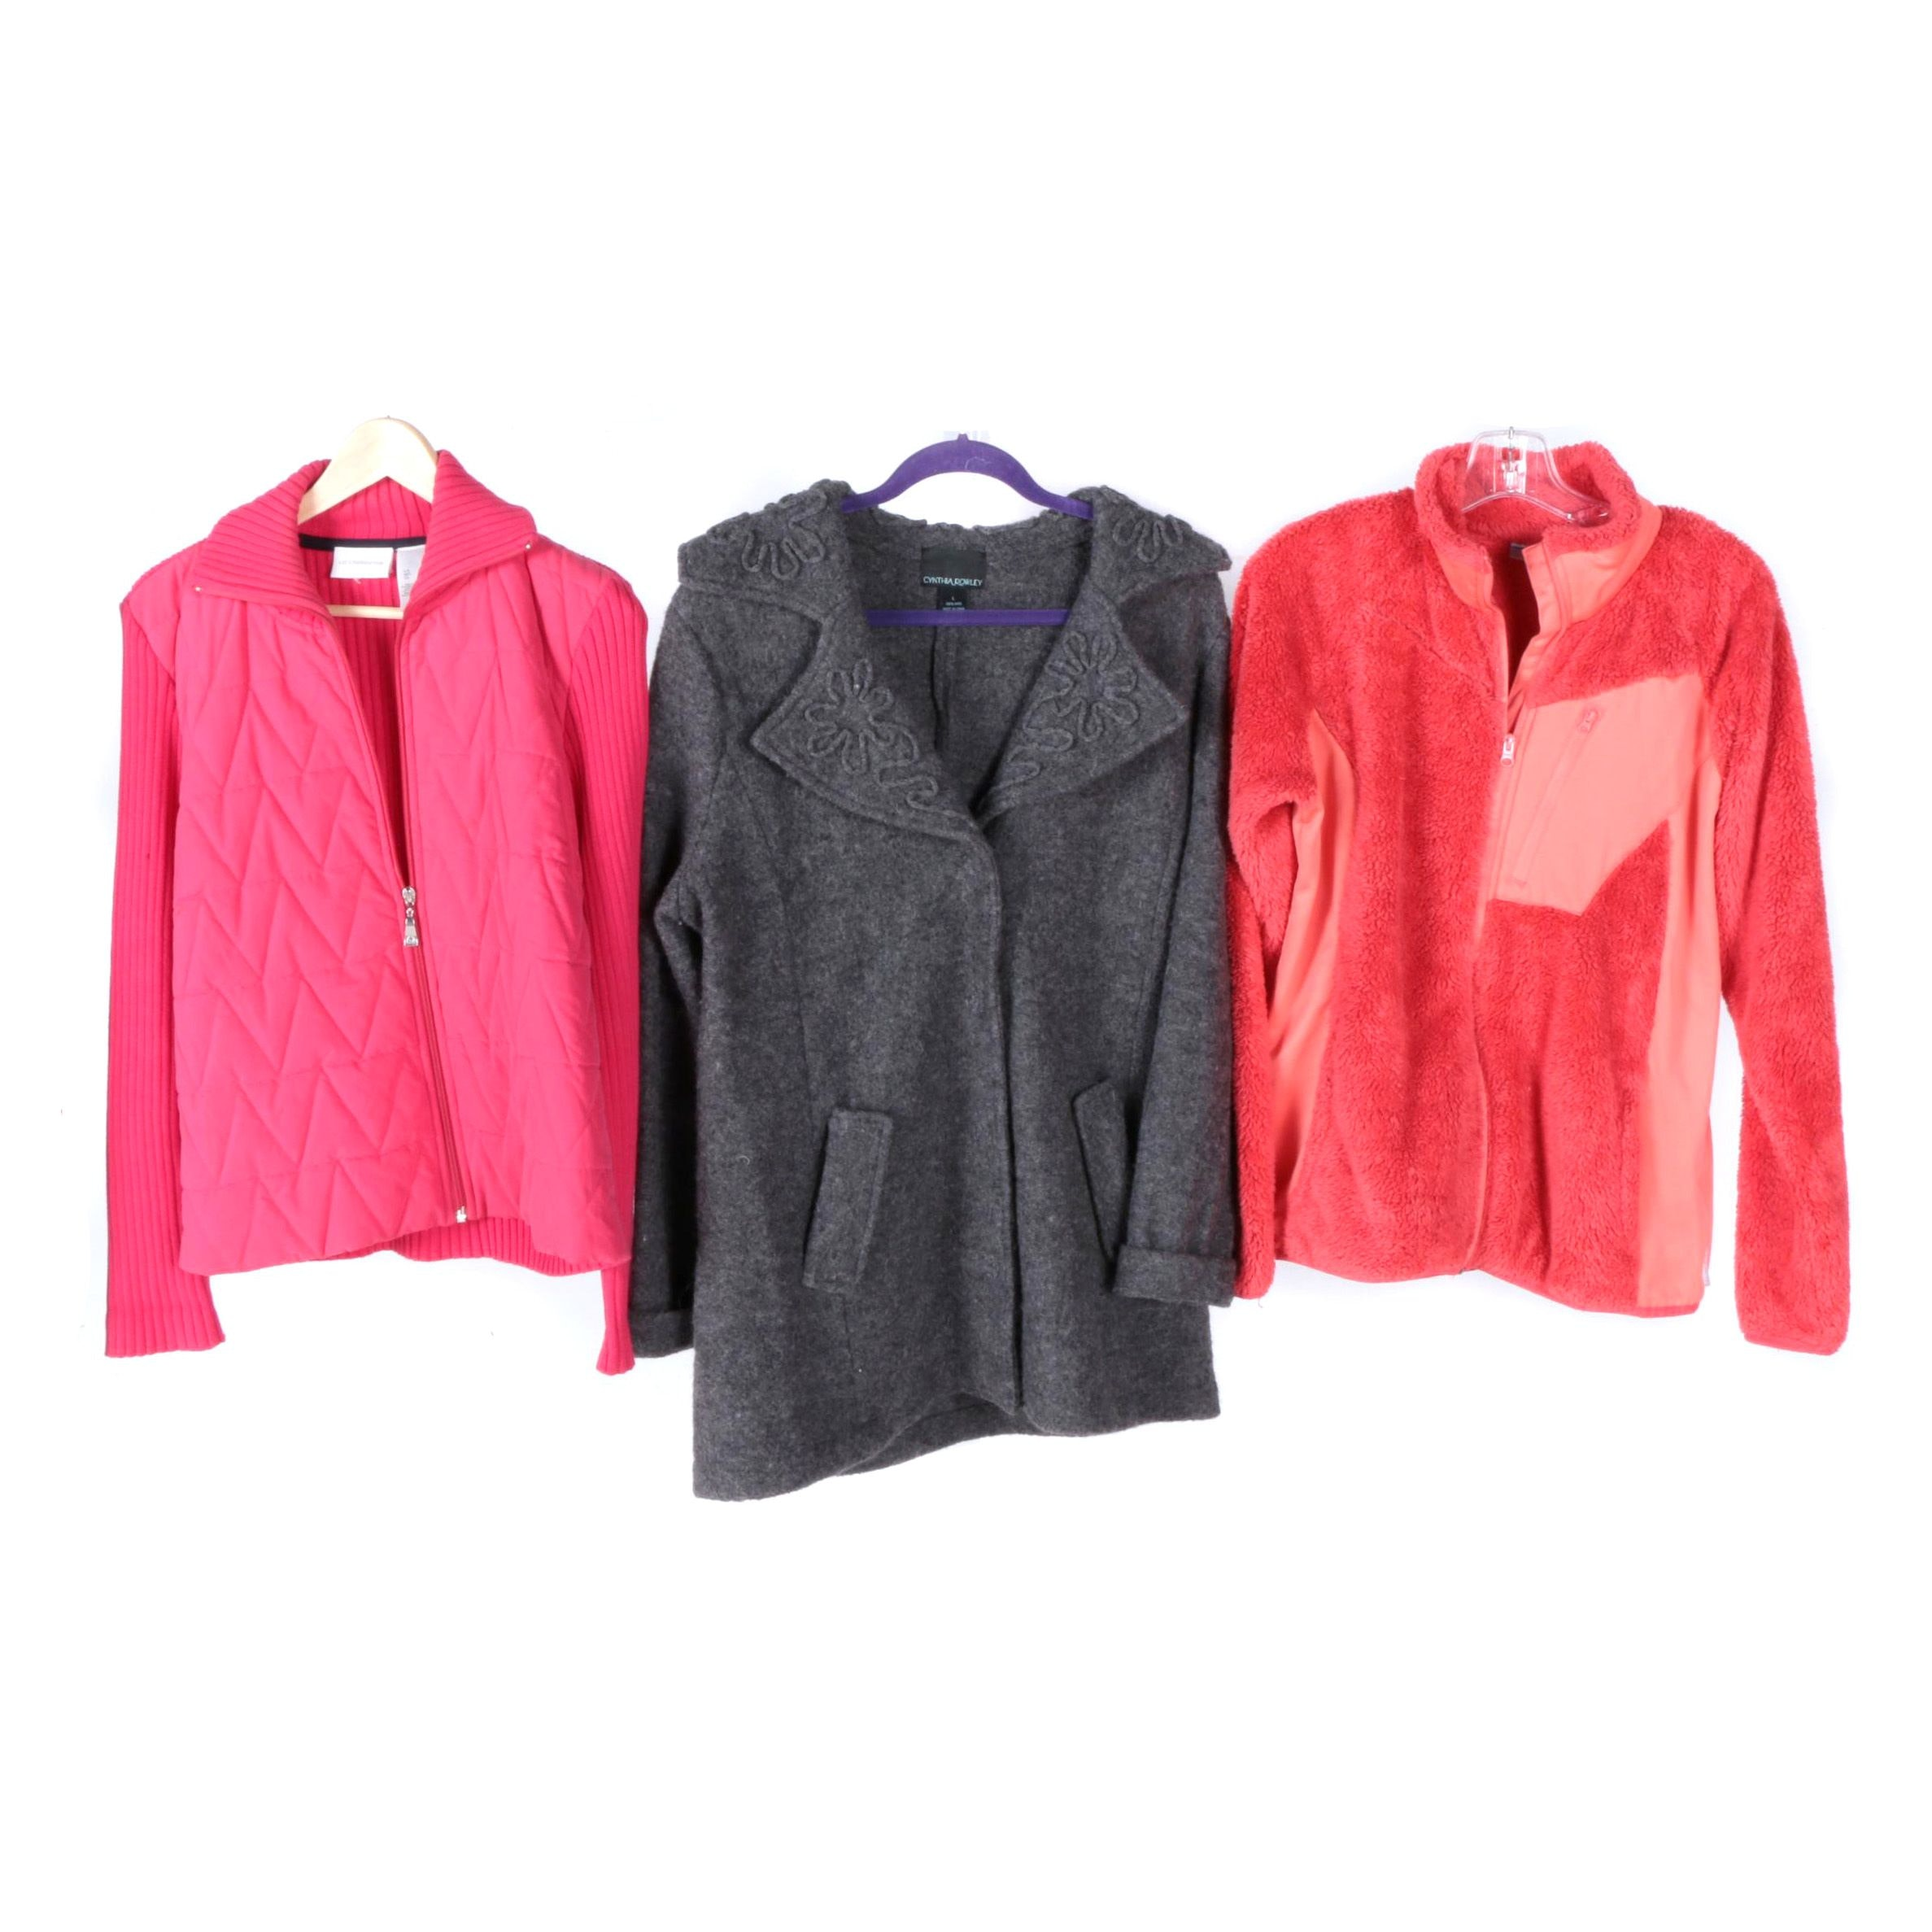 Women's Jackets Including Cynthia Rowley